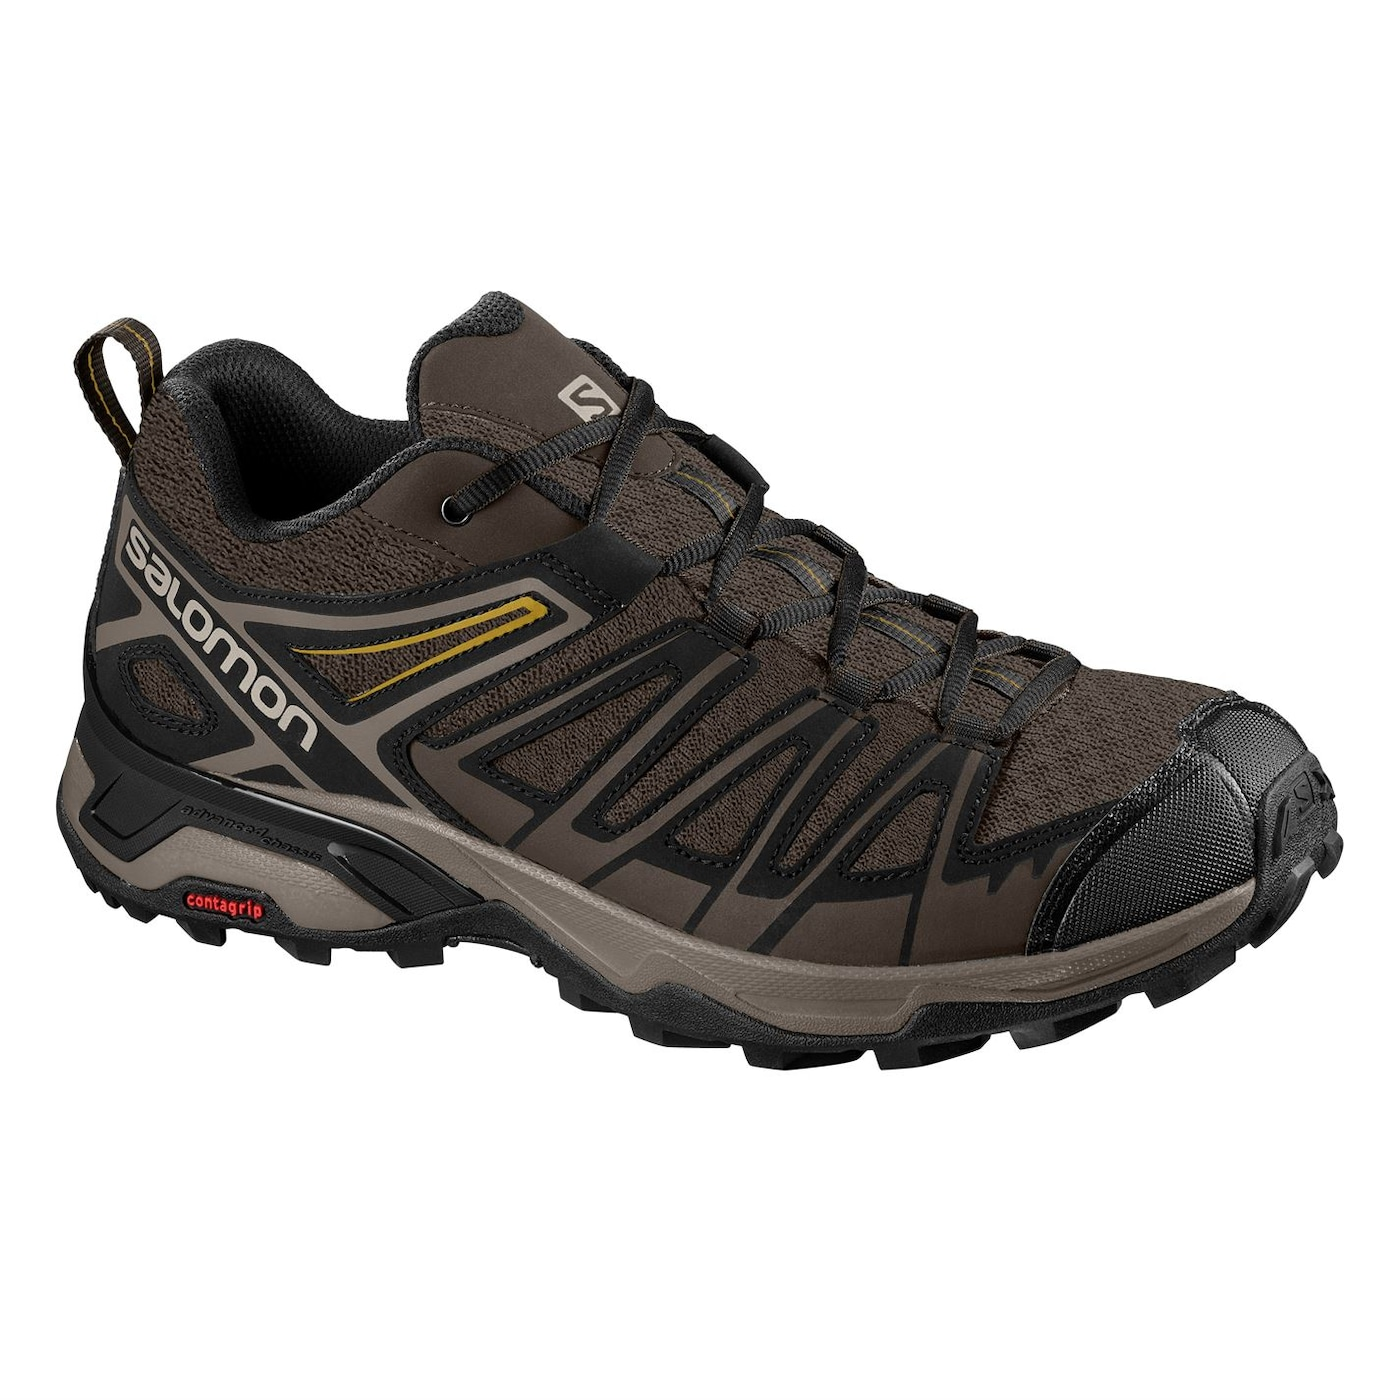 Salomon X Ultra 3 Prime Mens Walking Shoes